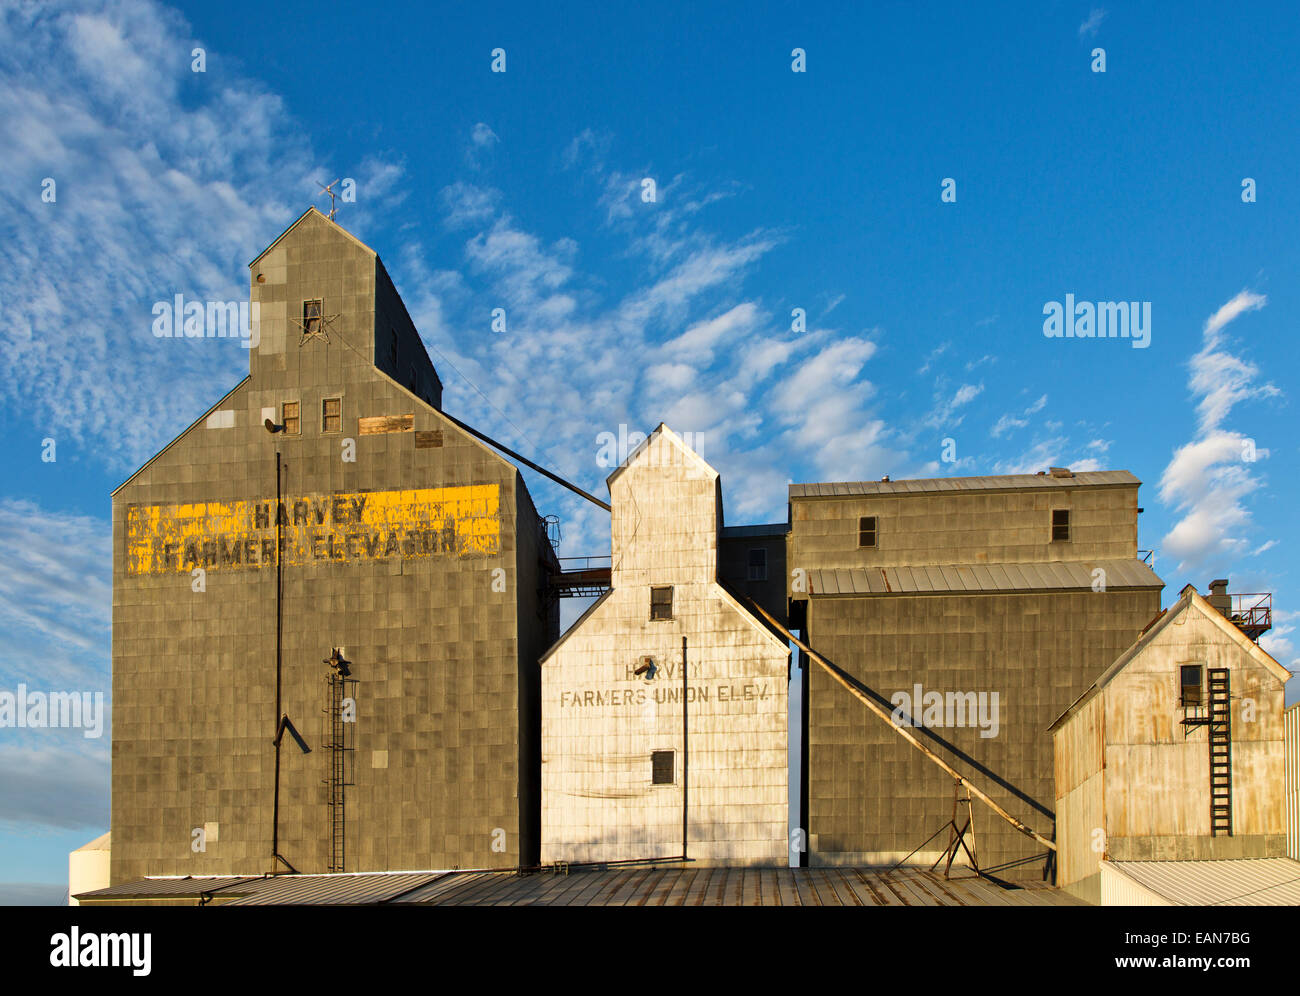 Harvey Farmers elevator & the older Farmers Union elevator. - Stock Image